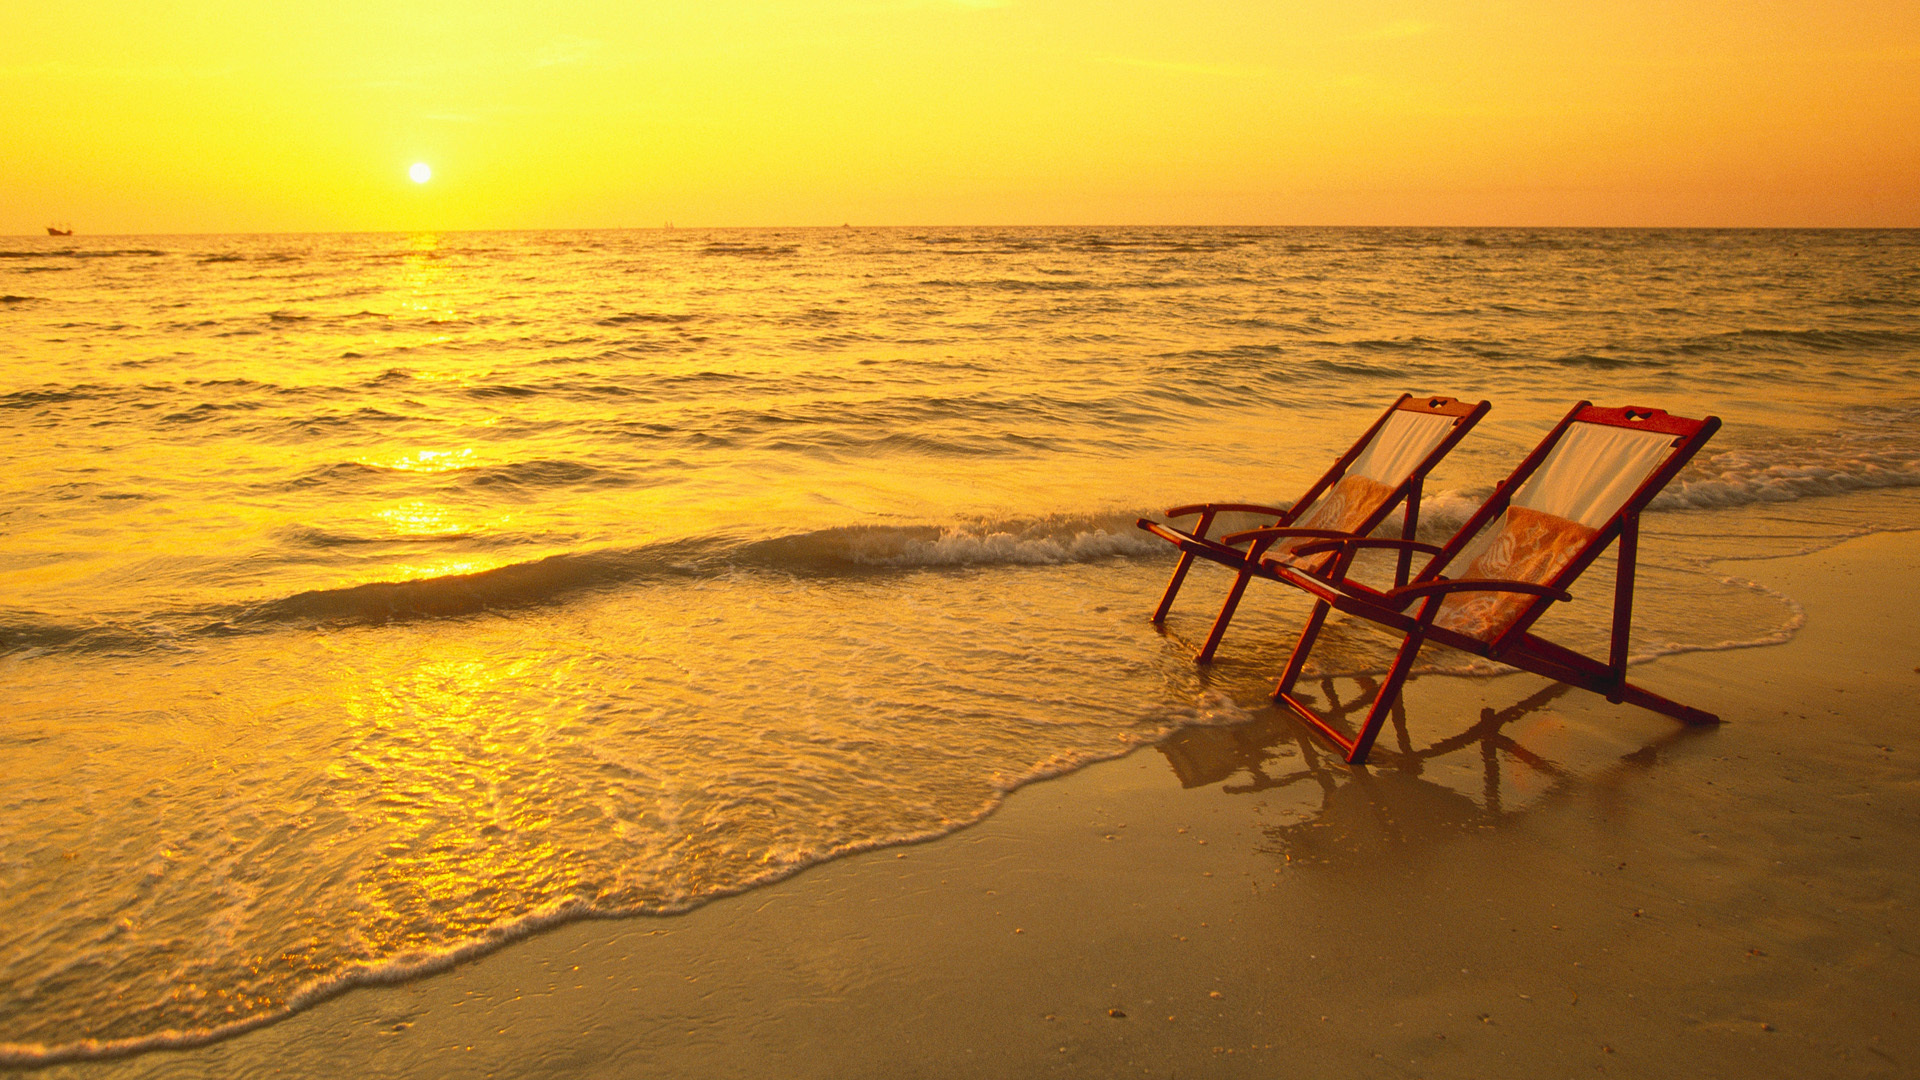 Beach Sunset With Chairs Hd Images 3 HD Wallpapers